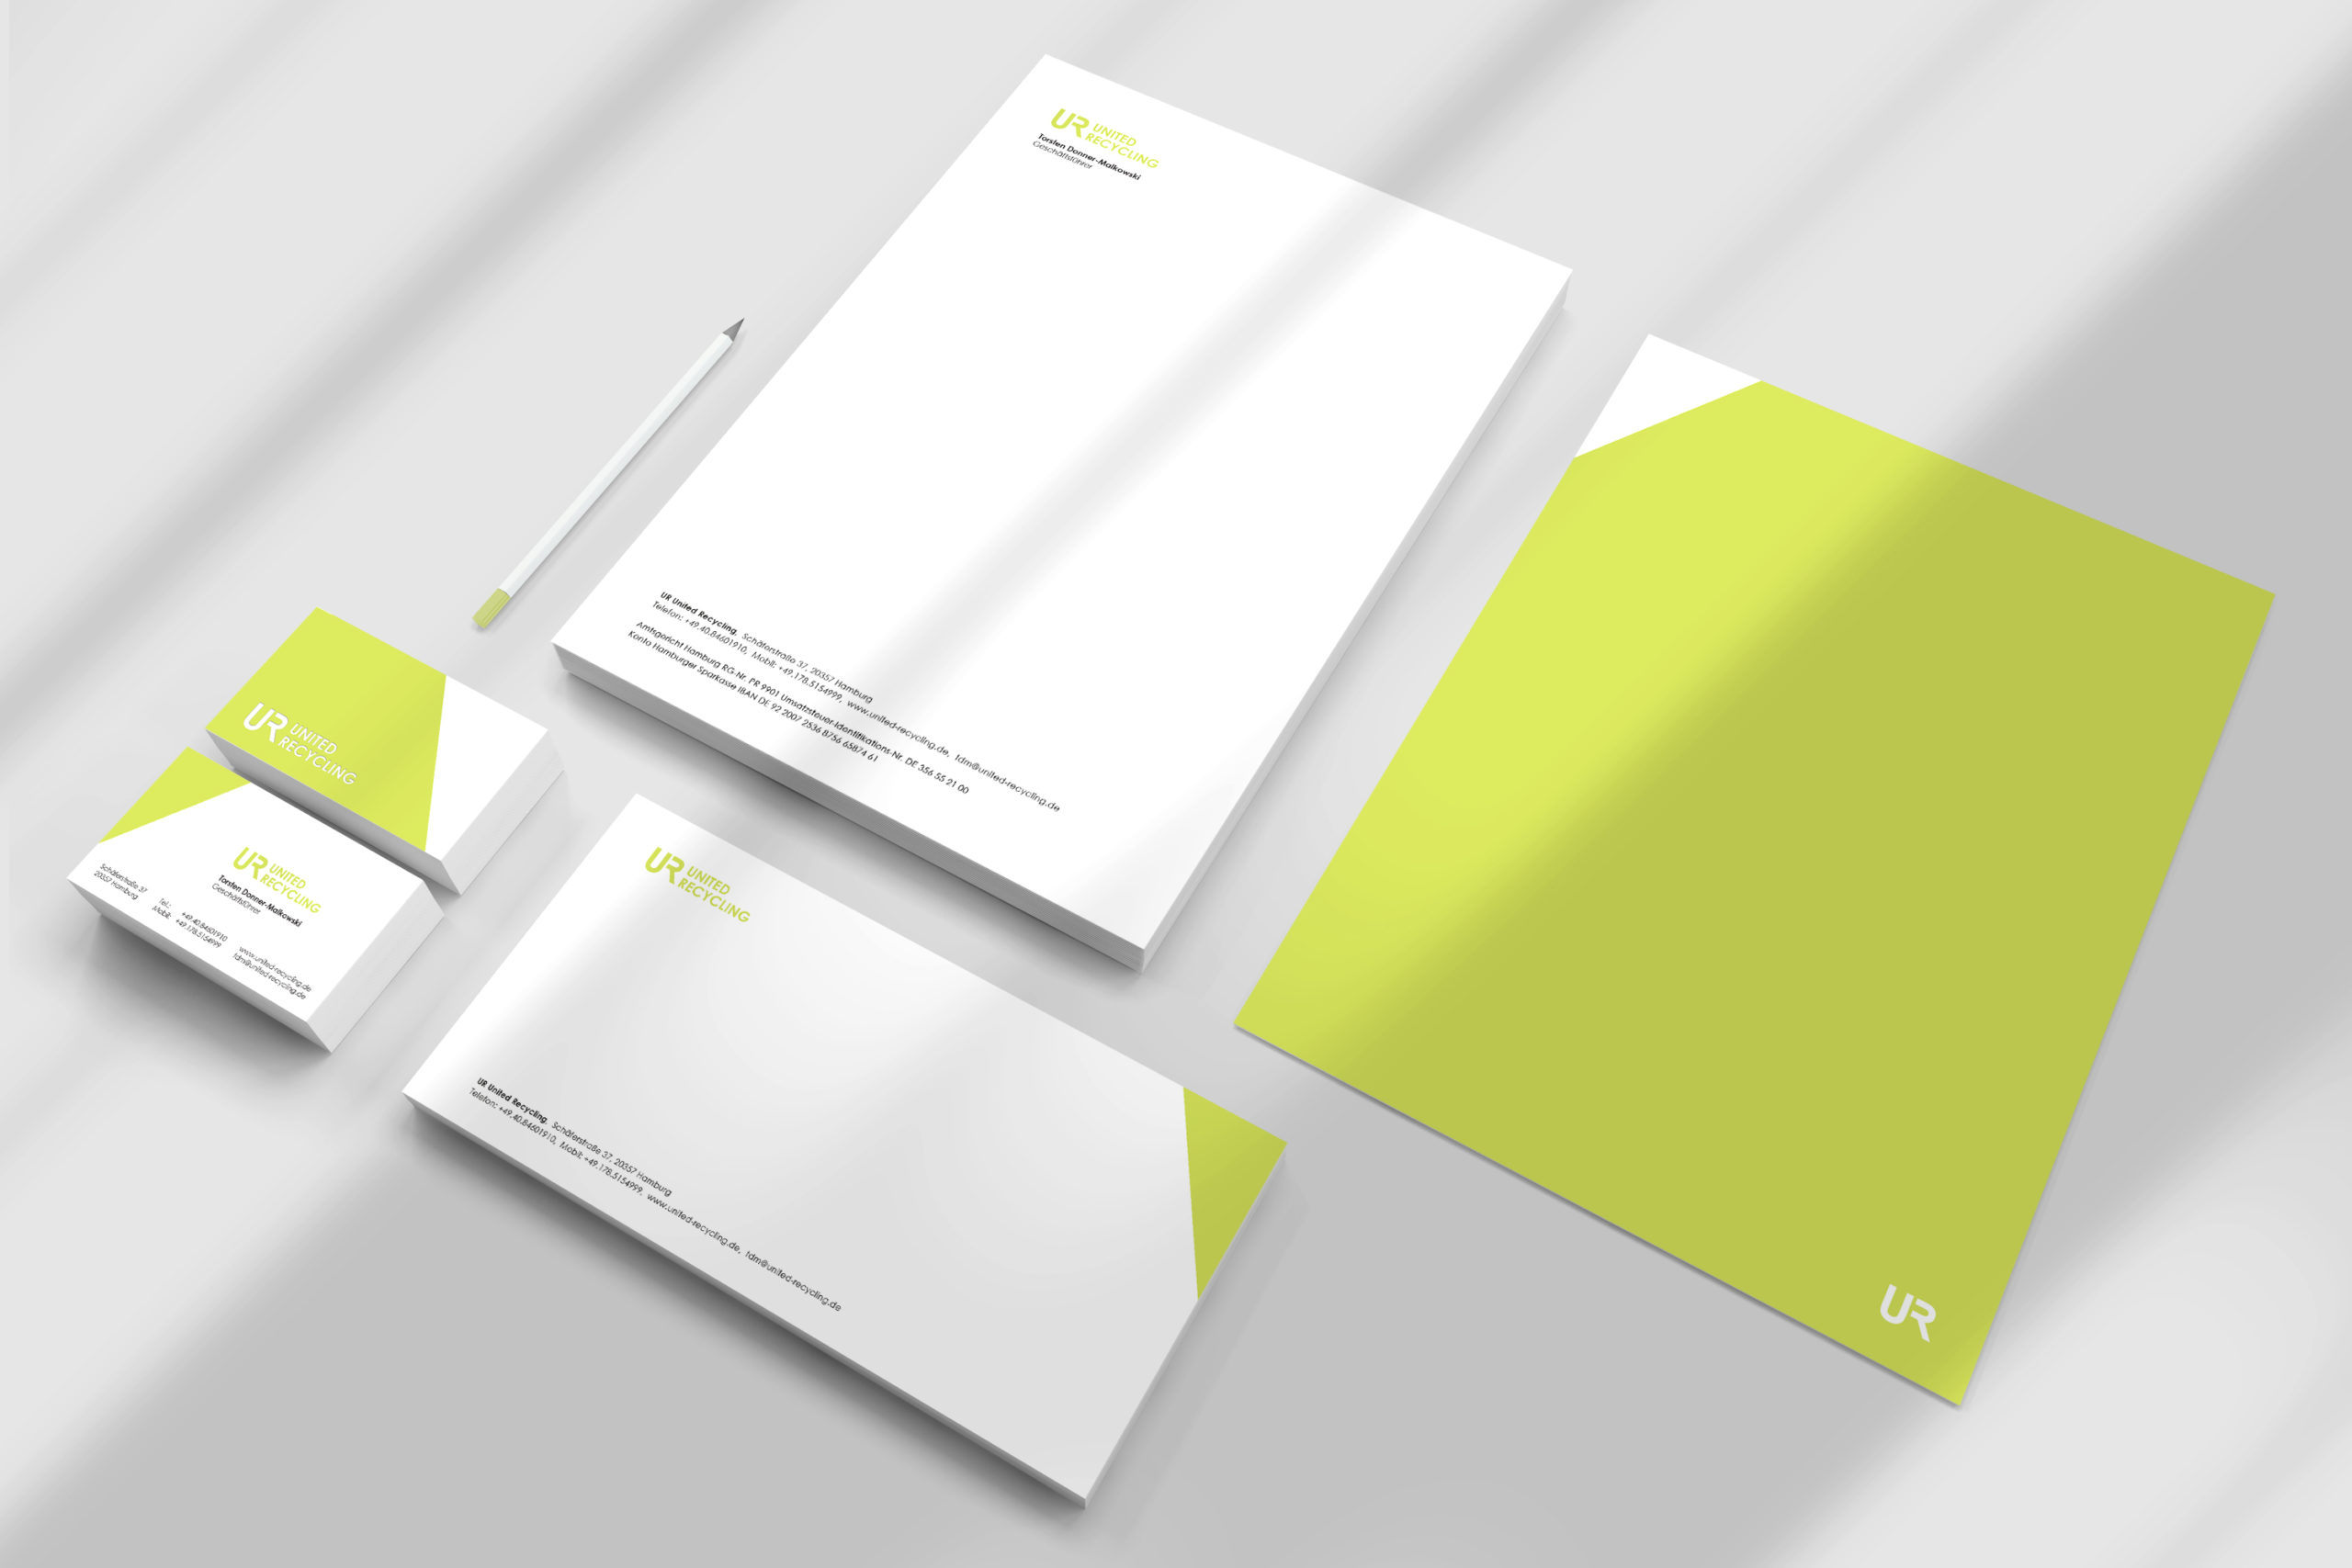 UNITED RECYCLING / Branding & stationary